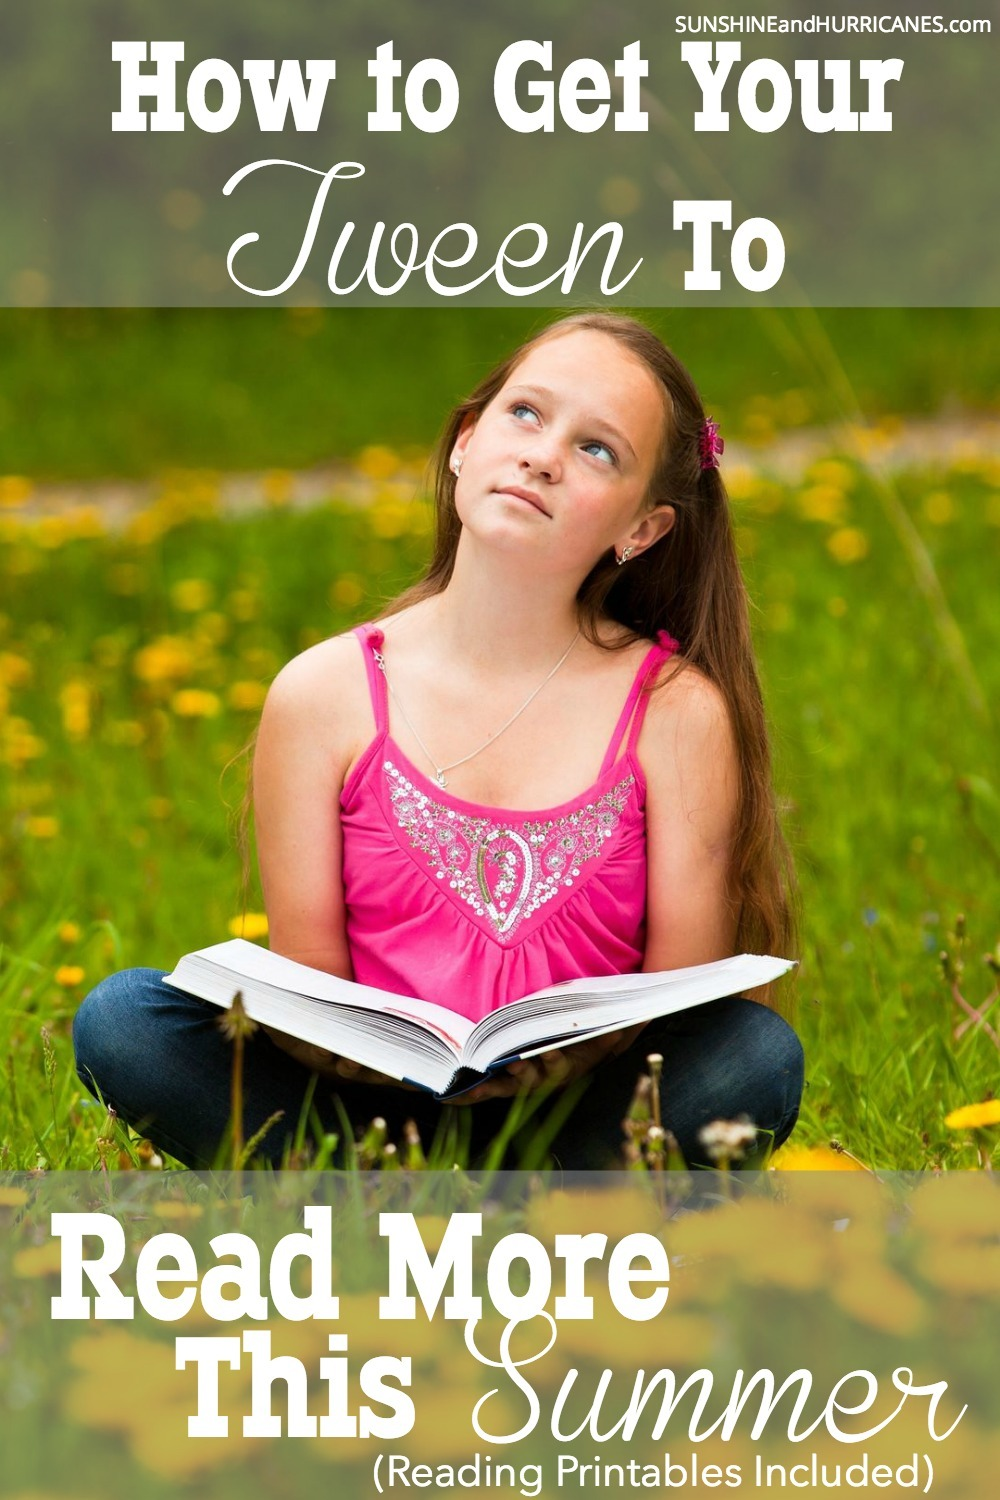 It can be hard to get kids to tear themselves away from screens during the summer, especially tweens and especially when you are trying to get them to read instead. Try this approach for motivating your reluctant readers and challenge them to a fun game with rewards they'll actually want to work towards. Summer Reading for Tweens, now to actually get your tween or teen to read more this summer! SunshineandHurricanes.com